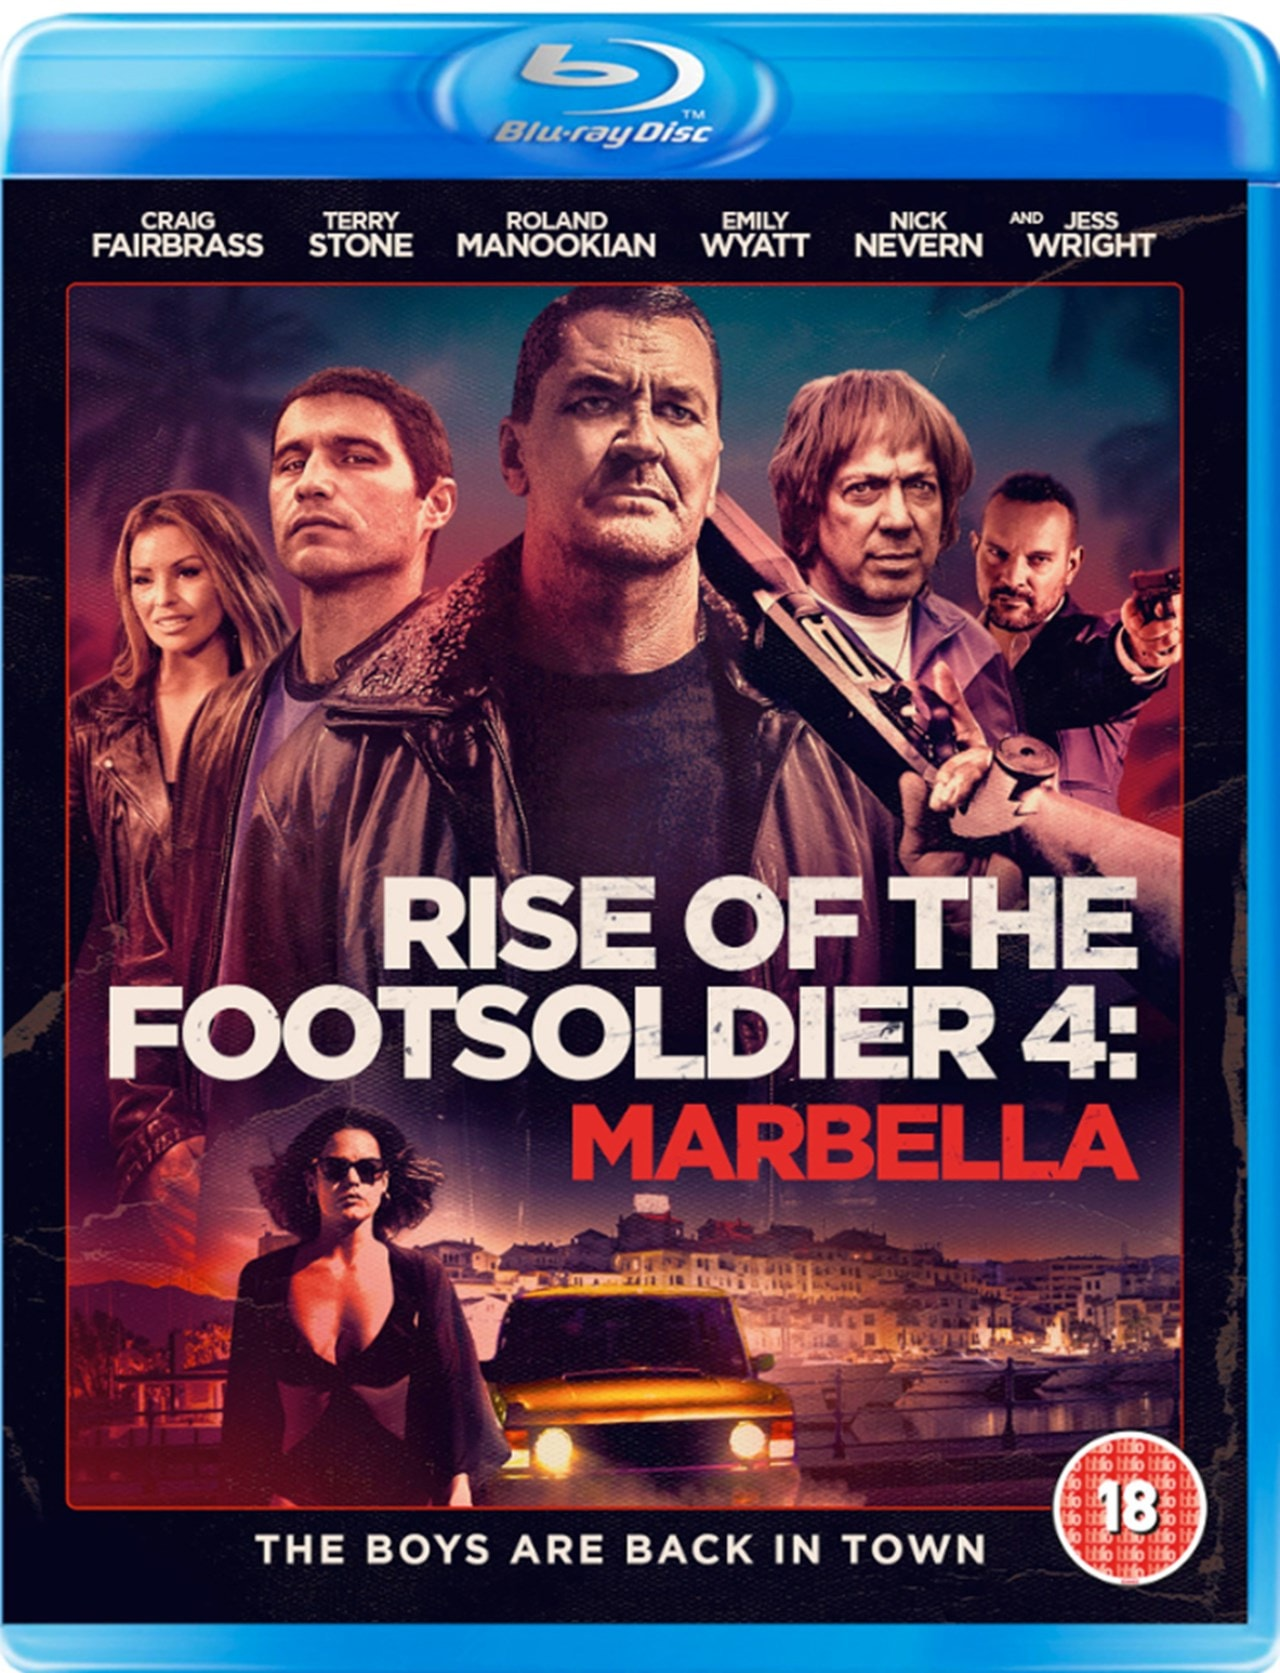 Rise of the Footsoldier 4 - Marbella - 1